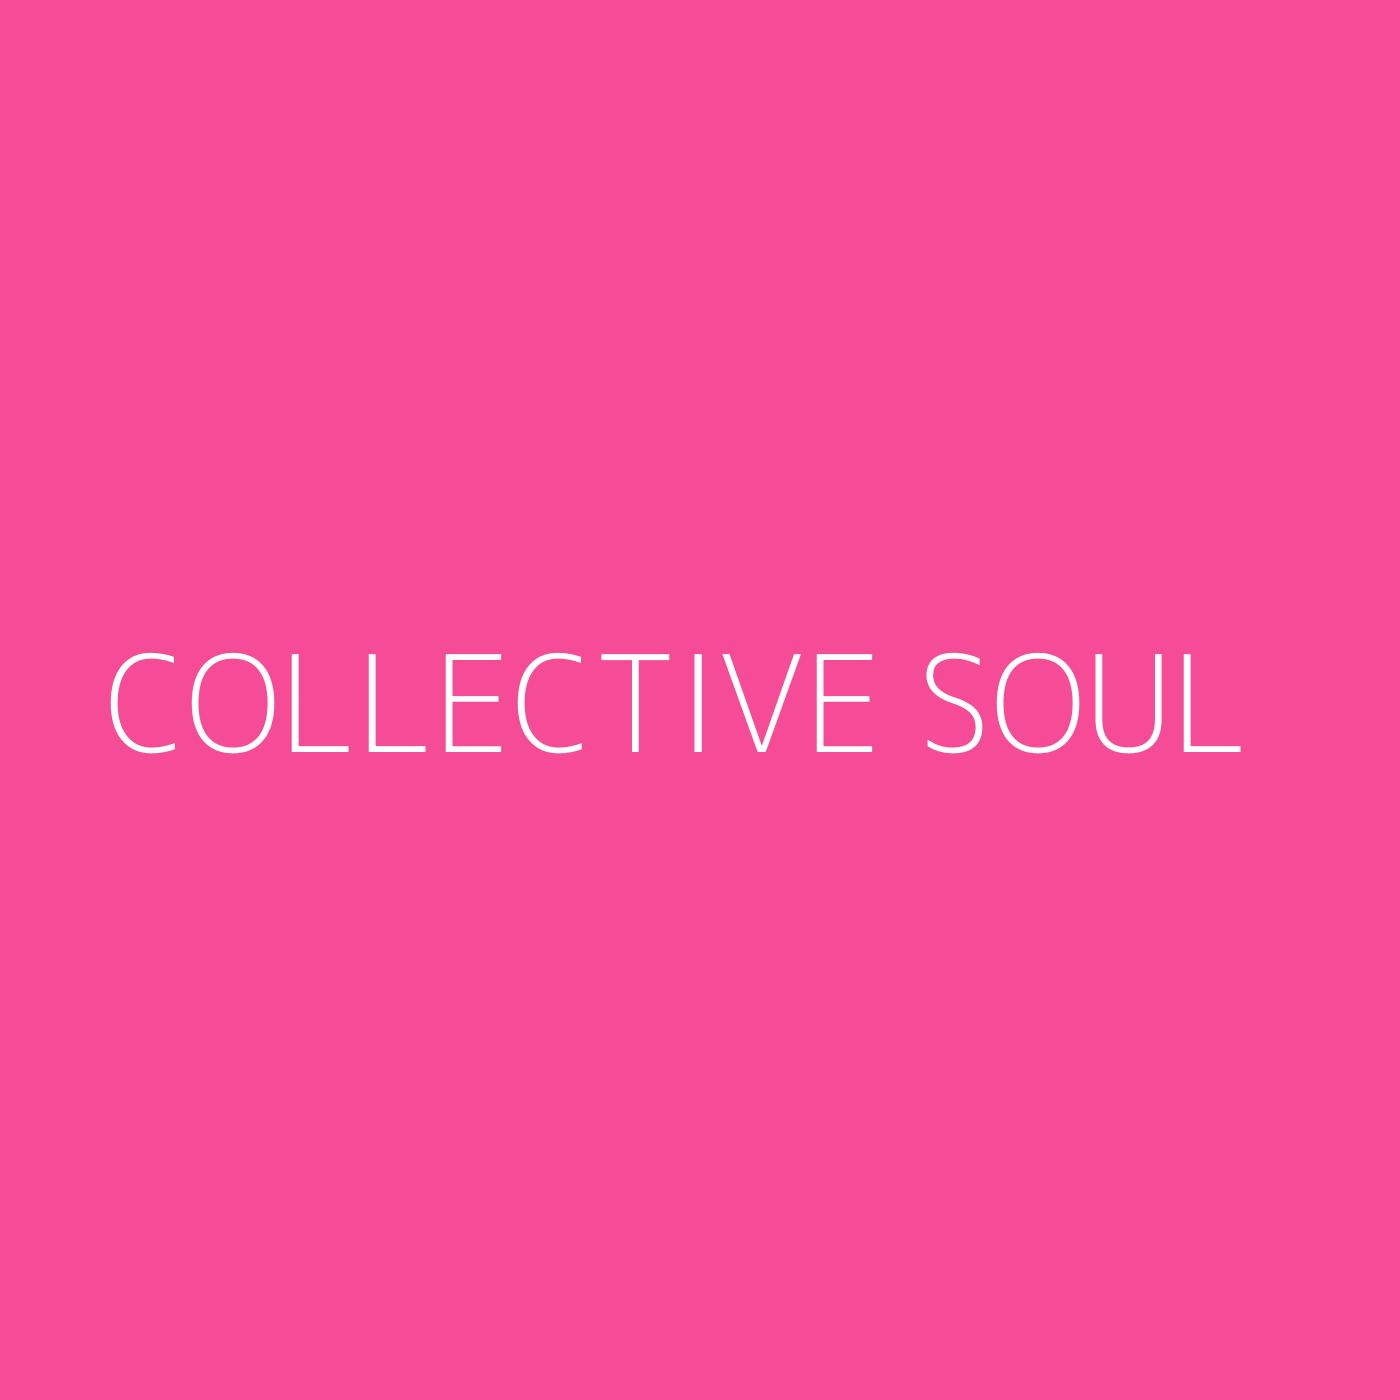 Collective Soul Playlist Artwork